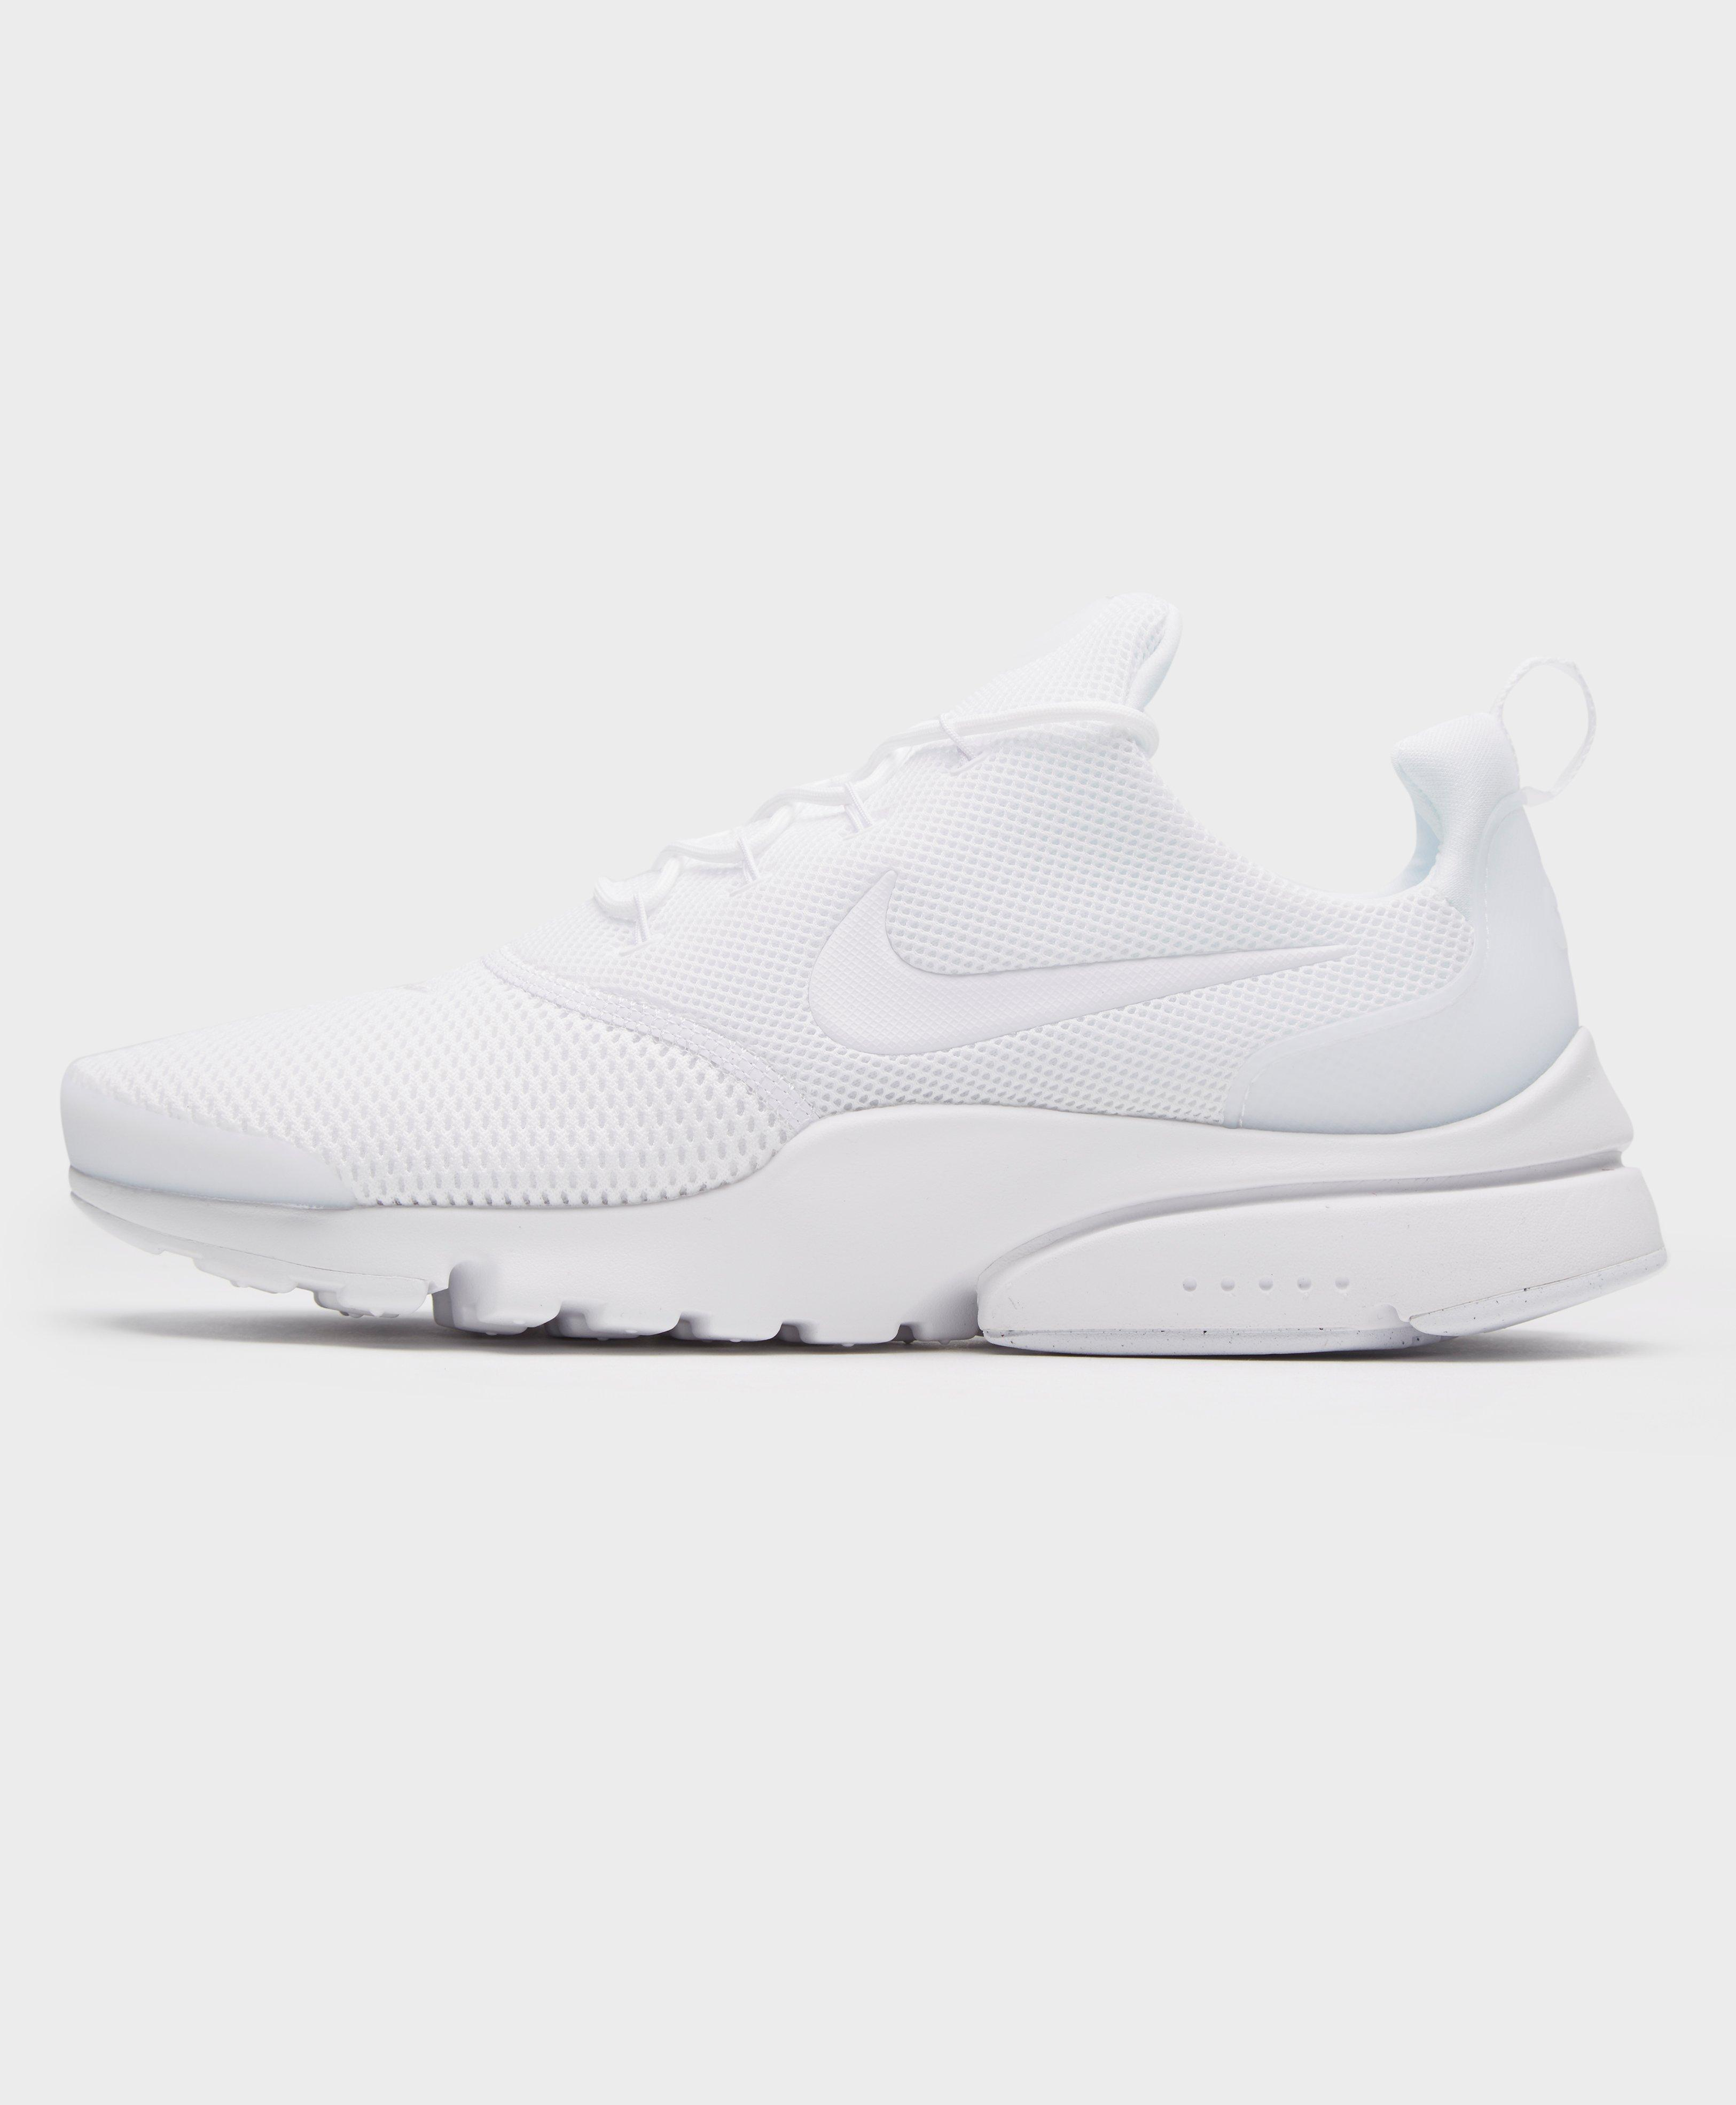 Nike Air Presto Fly in White for Men - Lyst ff9063608